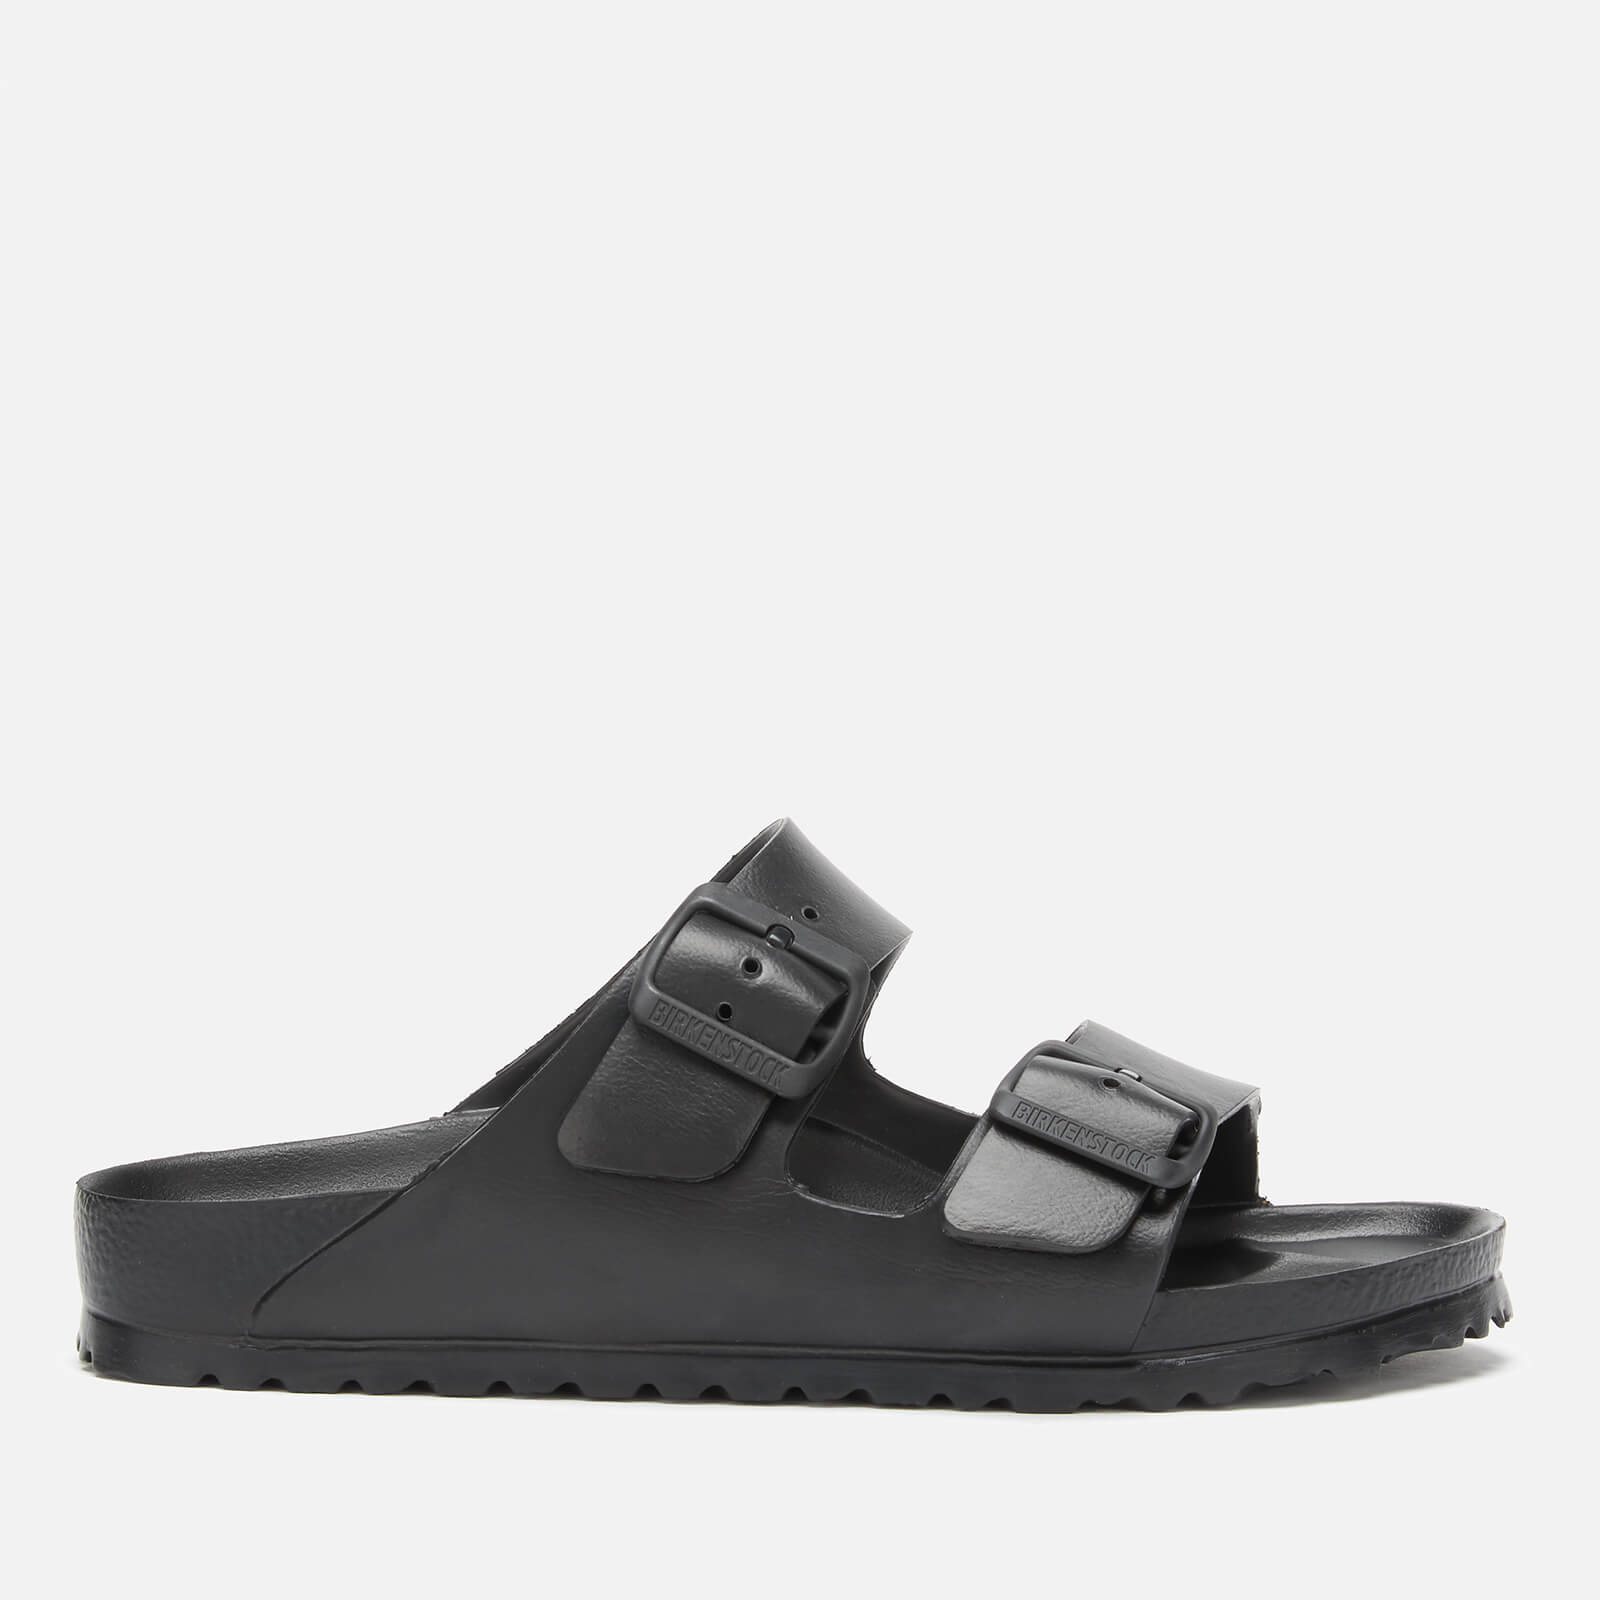 Birkenstock Women's Arizona Eva Double Strap Sandals - Black - EU 36/UK 3.5